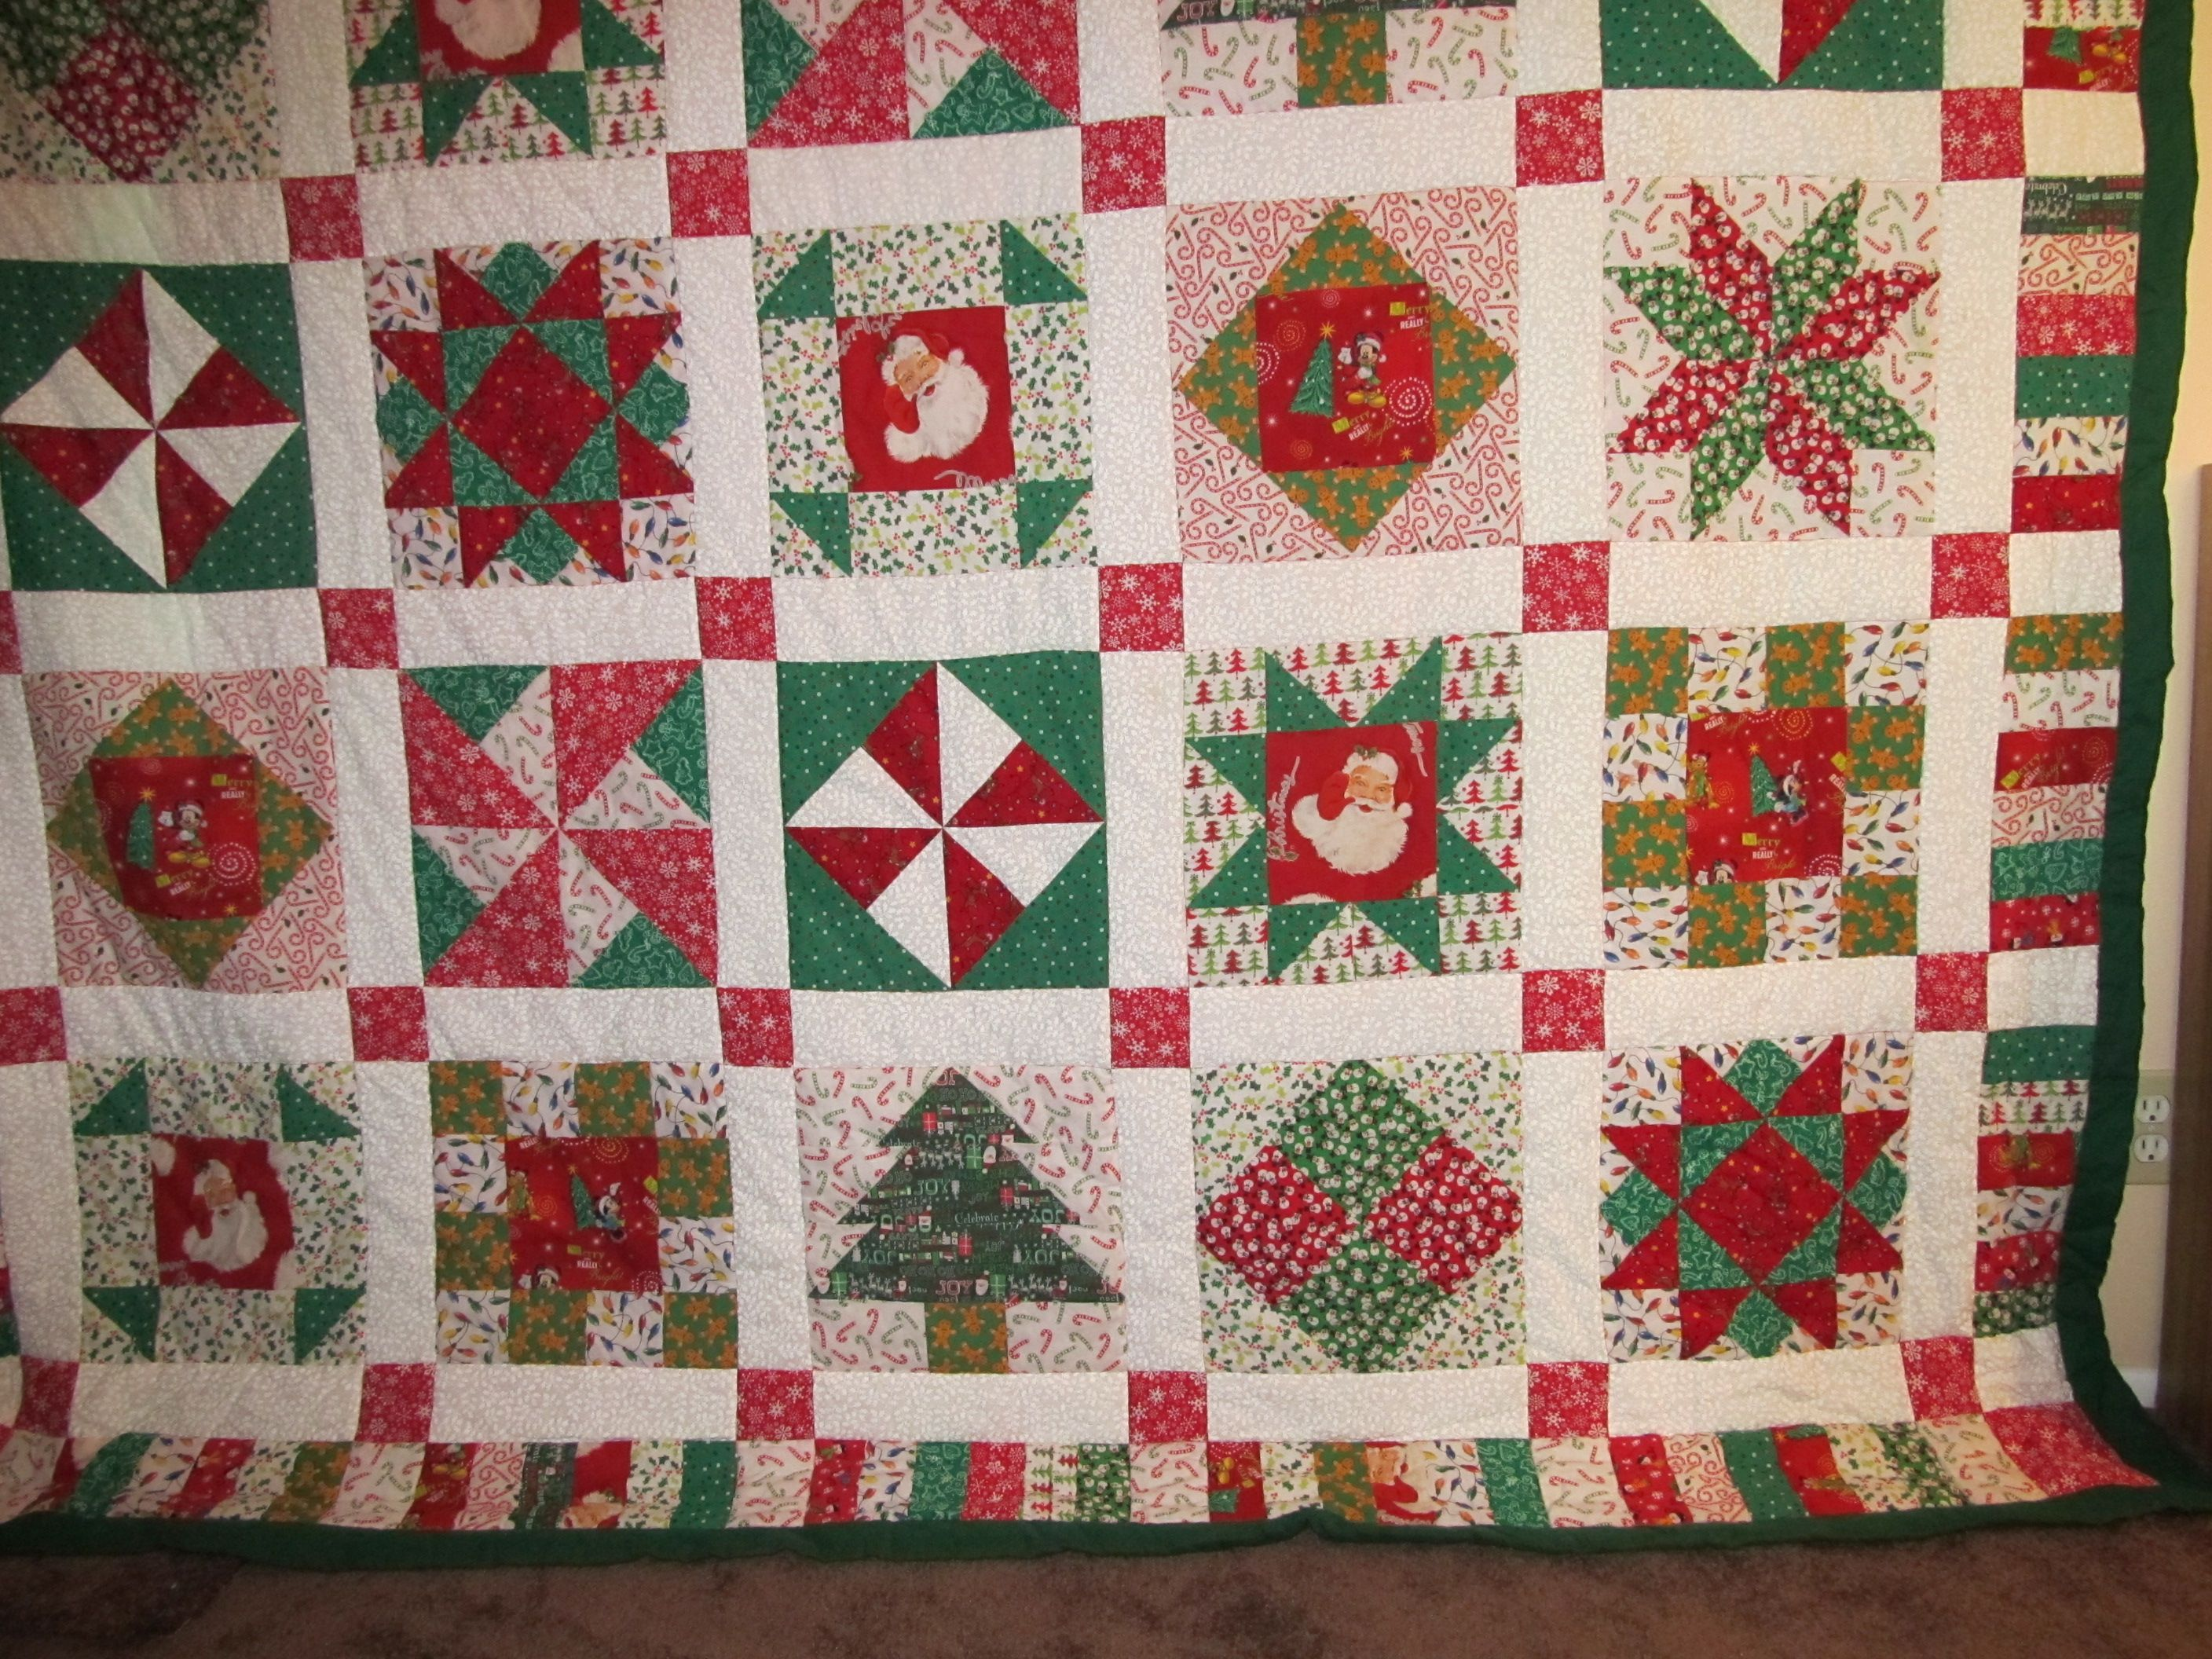 quilts with asked quilt belt for trunk the frances members august meeting what this program was sharing bring quilters show people to christmas a pine beautiful their several